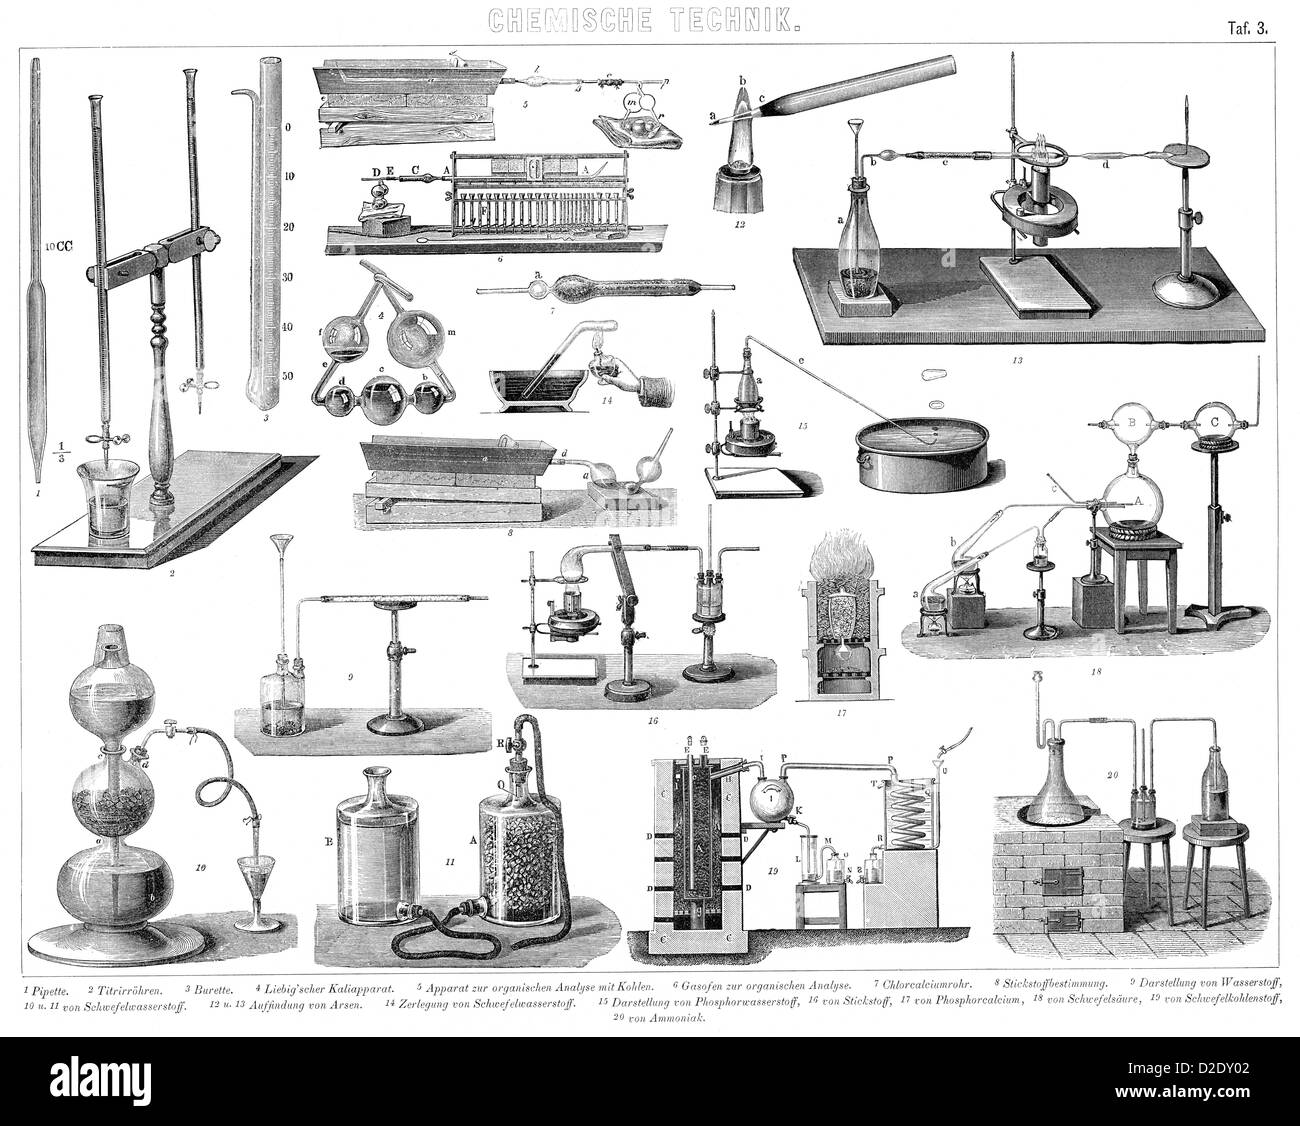 Vintage Chemistry Equipment From The 19th Century Stock Photo Royalty Free Image